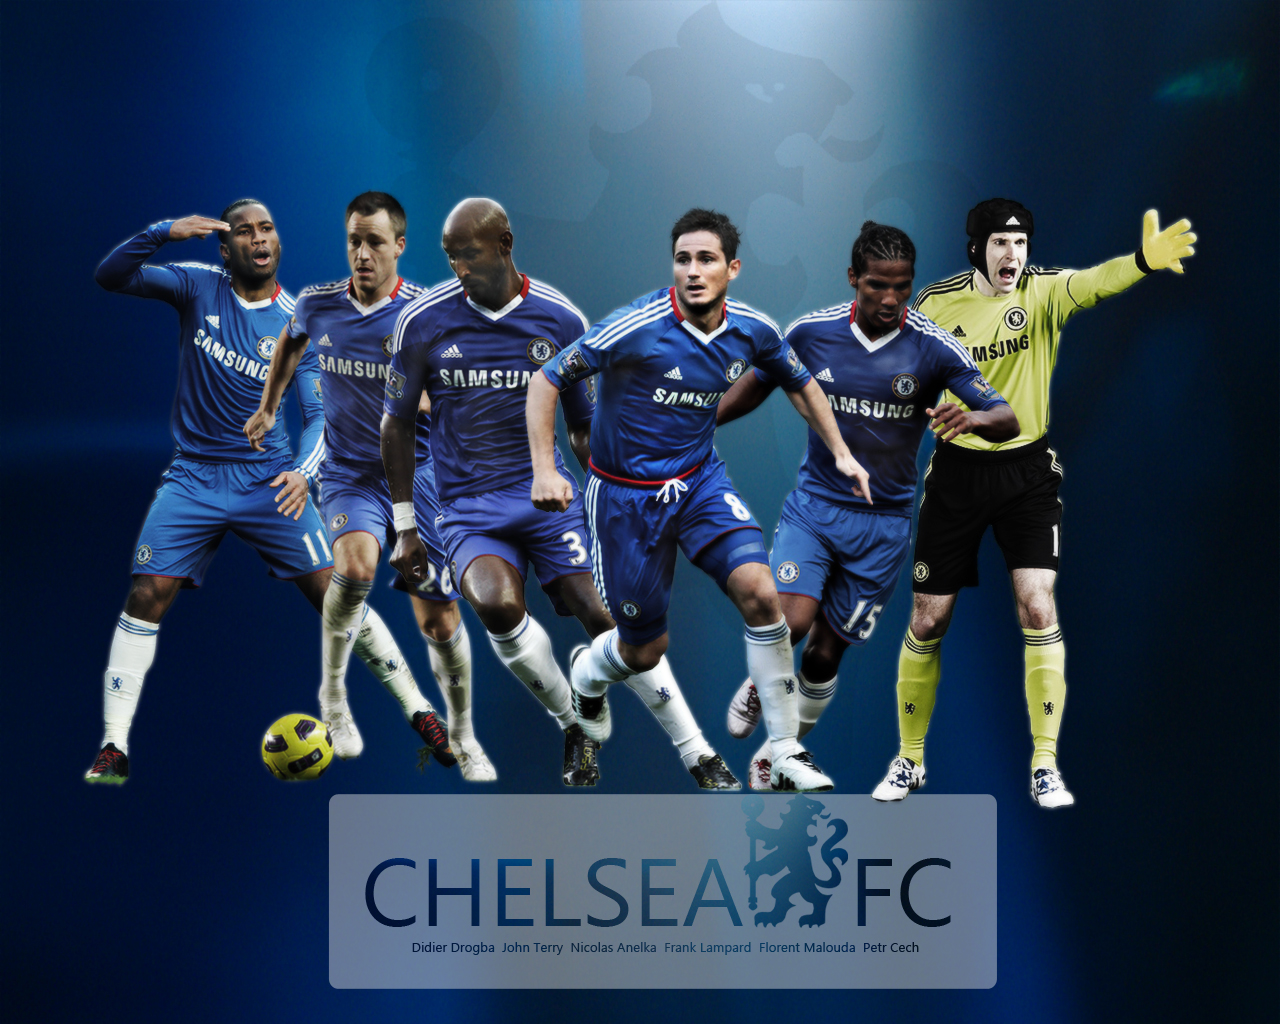 Chelsea Fc Team Wallpaper Niftythriftyloveliness picture wallpaper image